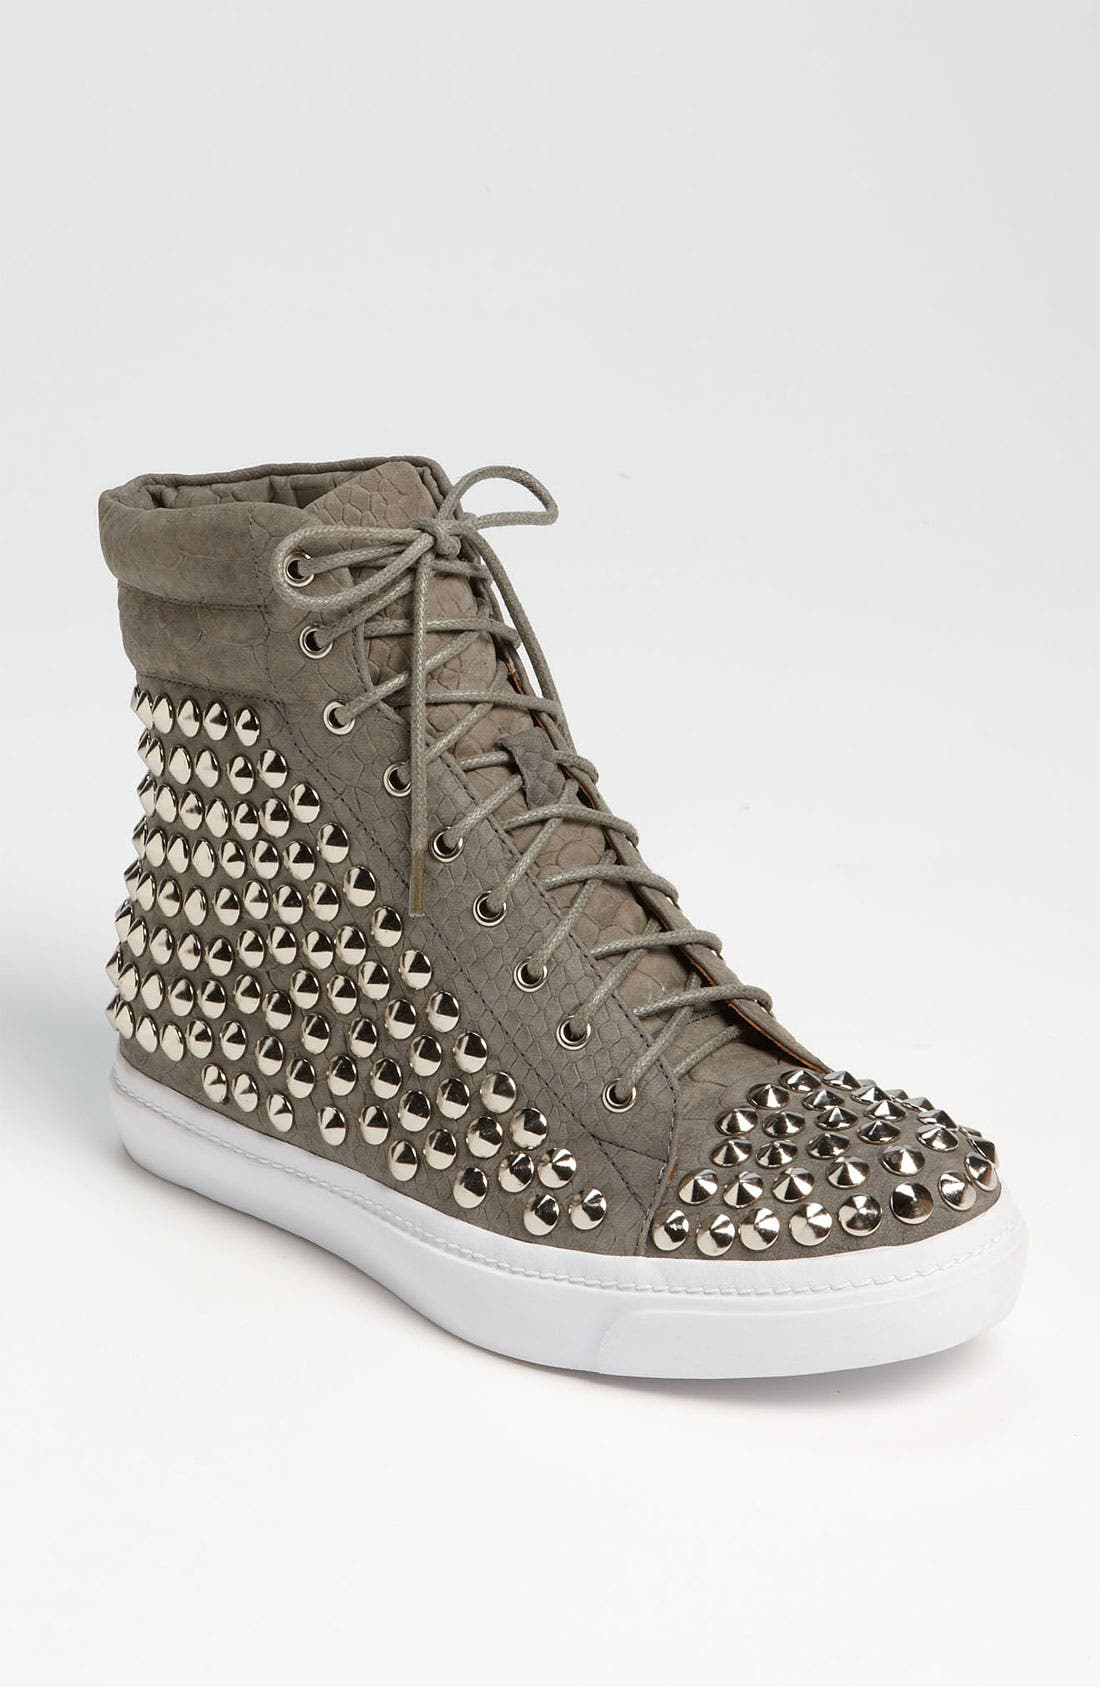 Alternate Image 1 Selected - Jeffrey Campbell 'Alva' Studded High Top Sneaker